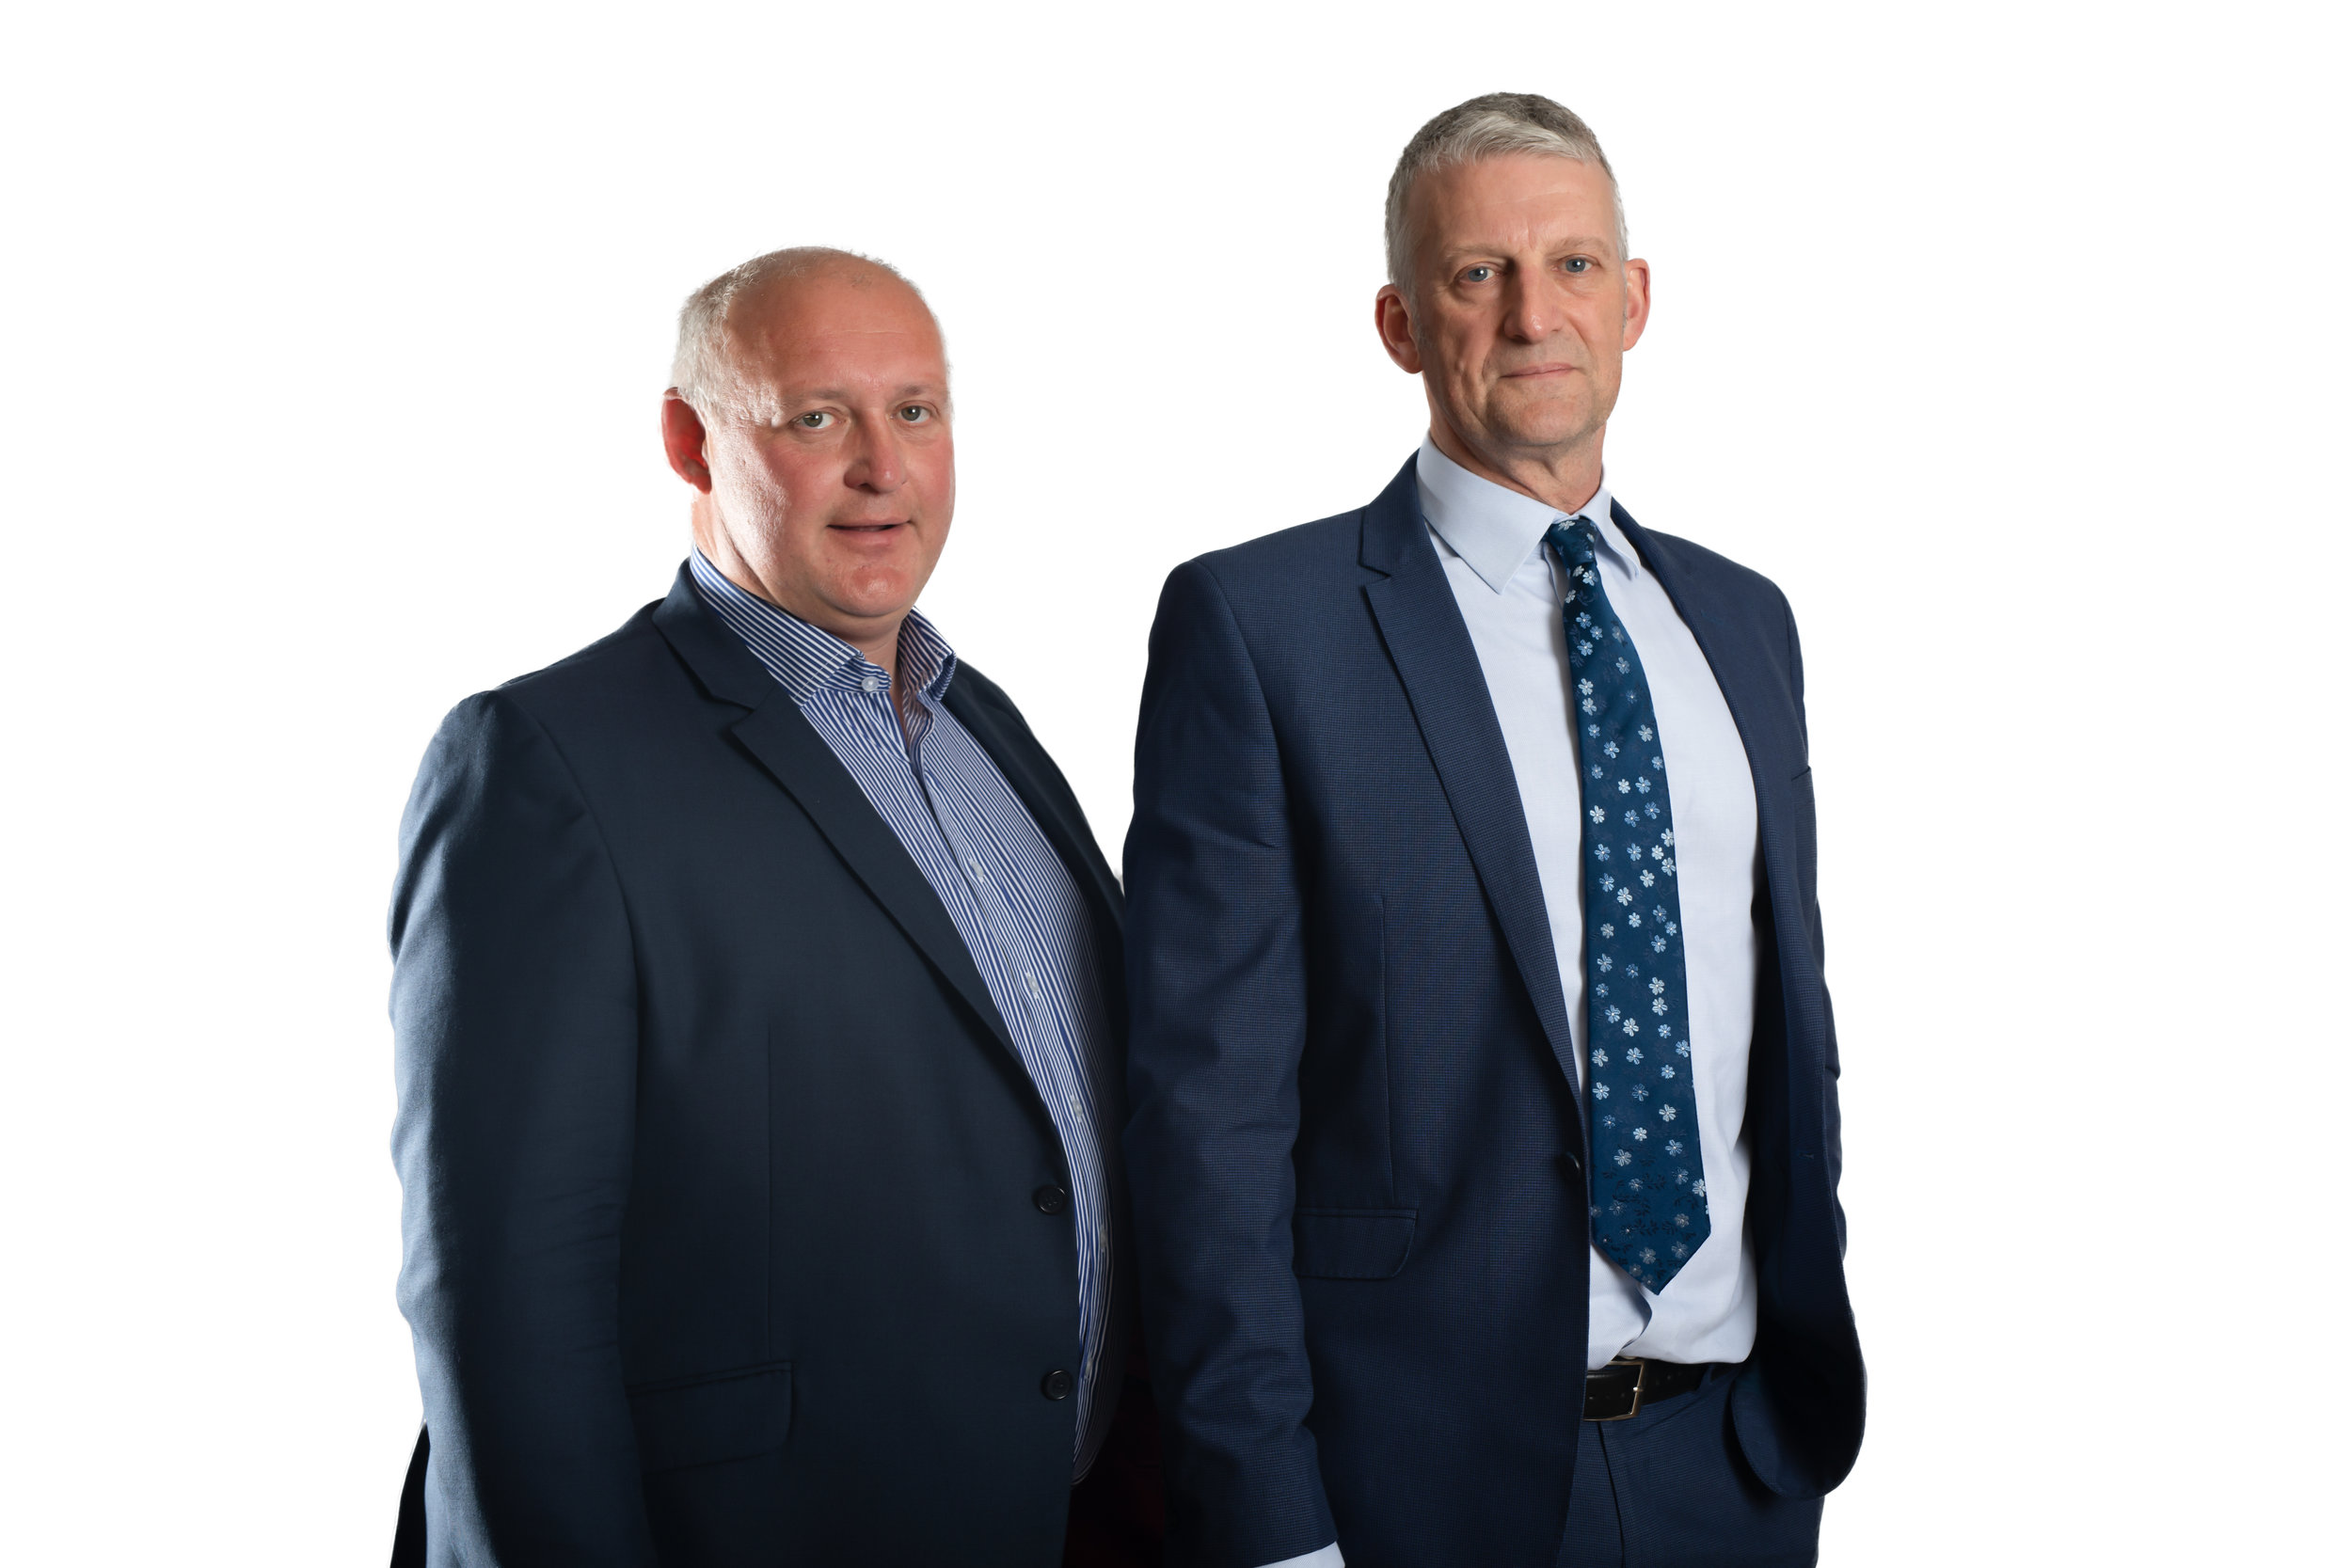 Outstanding advice & support - Meet the Team - Andrew Wiffen & David McWilliam